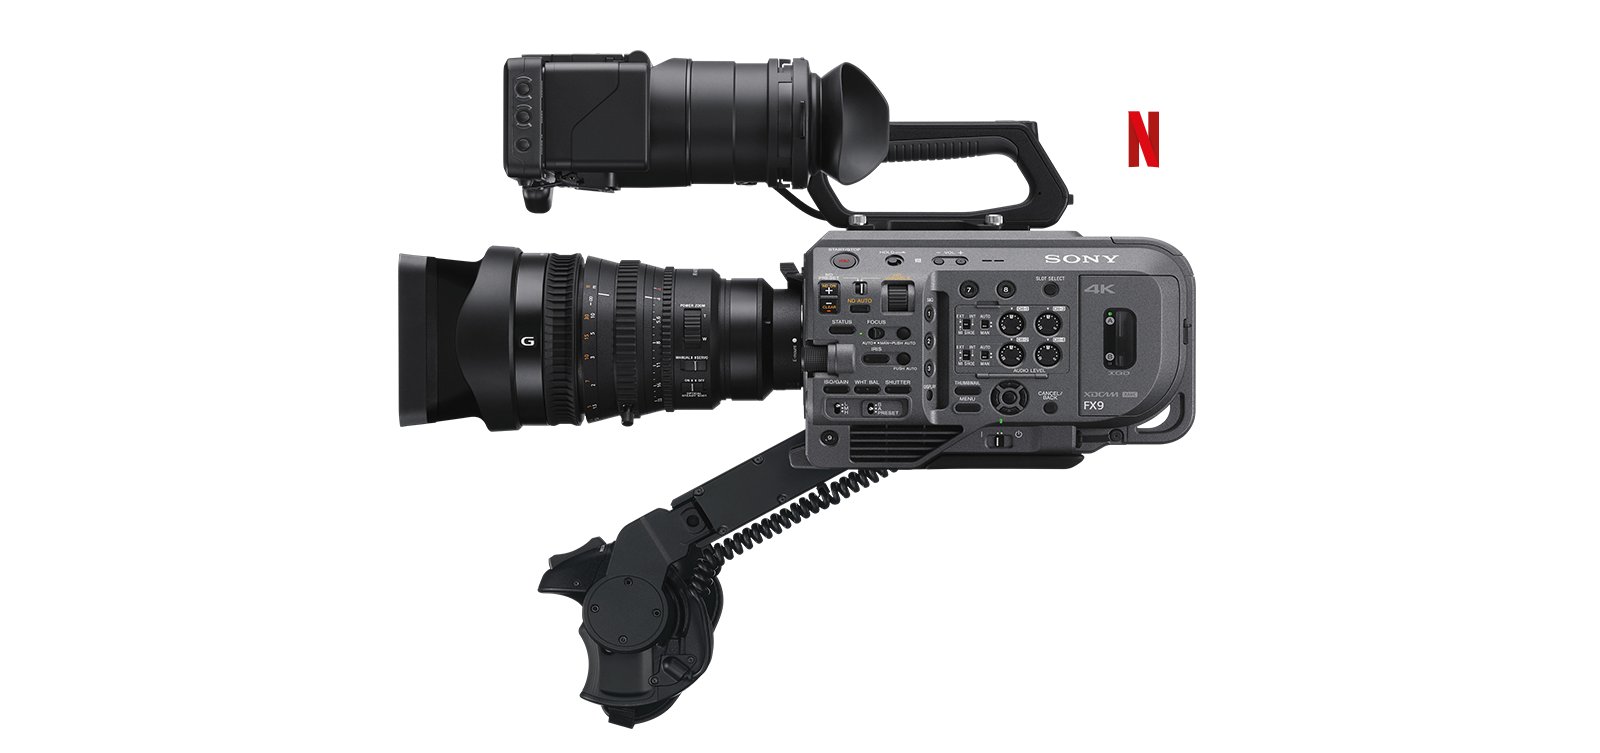 Vista lateral del camcorder Full Frame PXW-FX9 con el logotipo de Production Technology Alliance